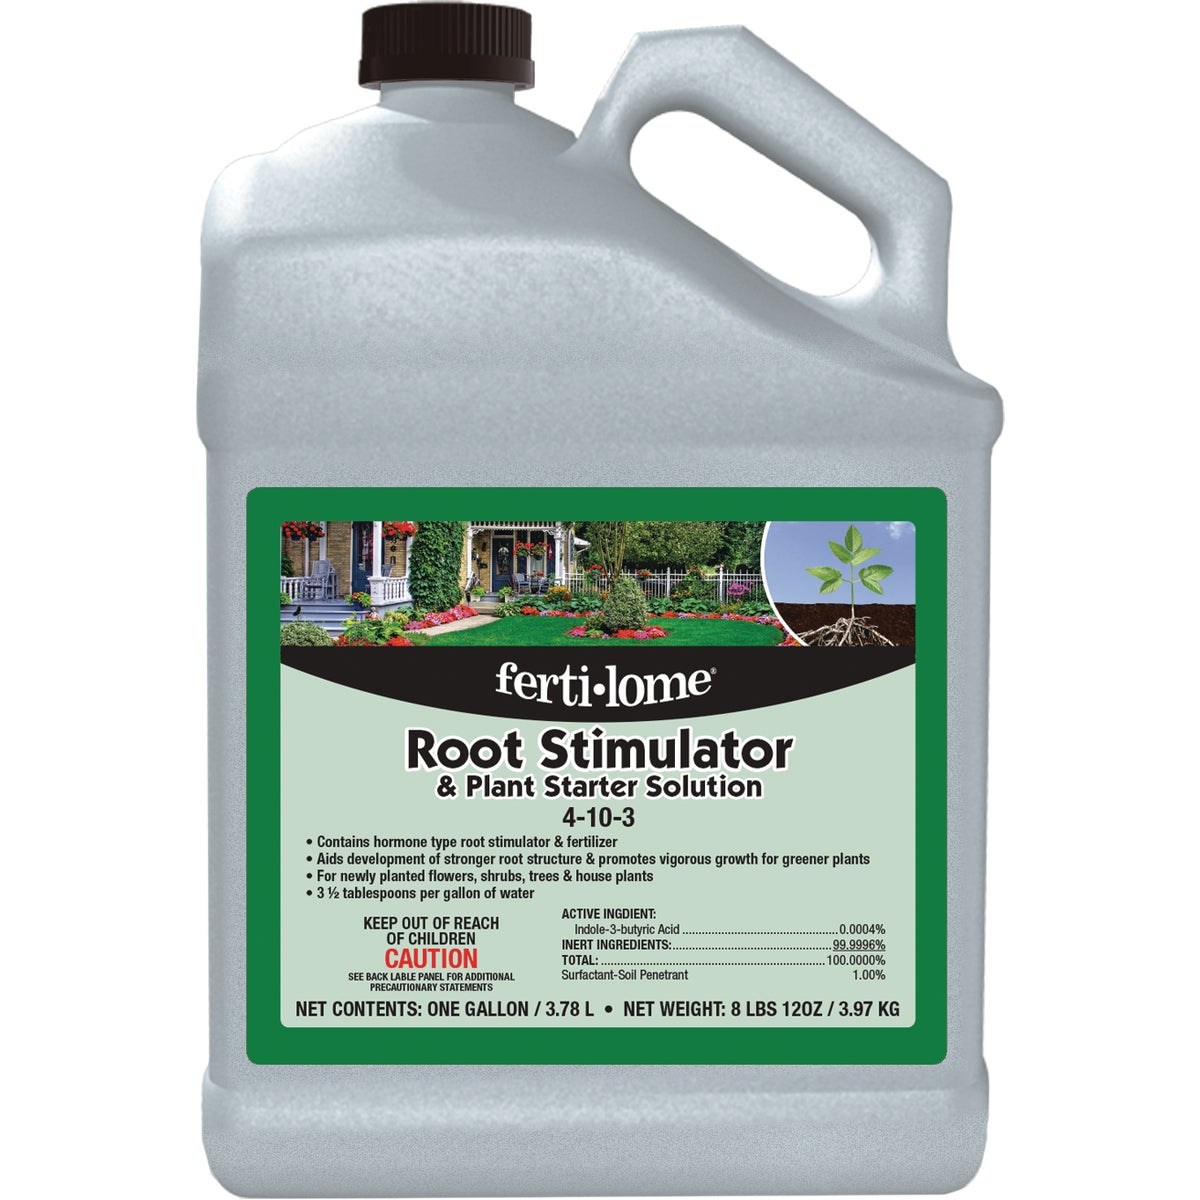 GAL ROOT STIMULATOR - 10650 by Vpg Fertilome